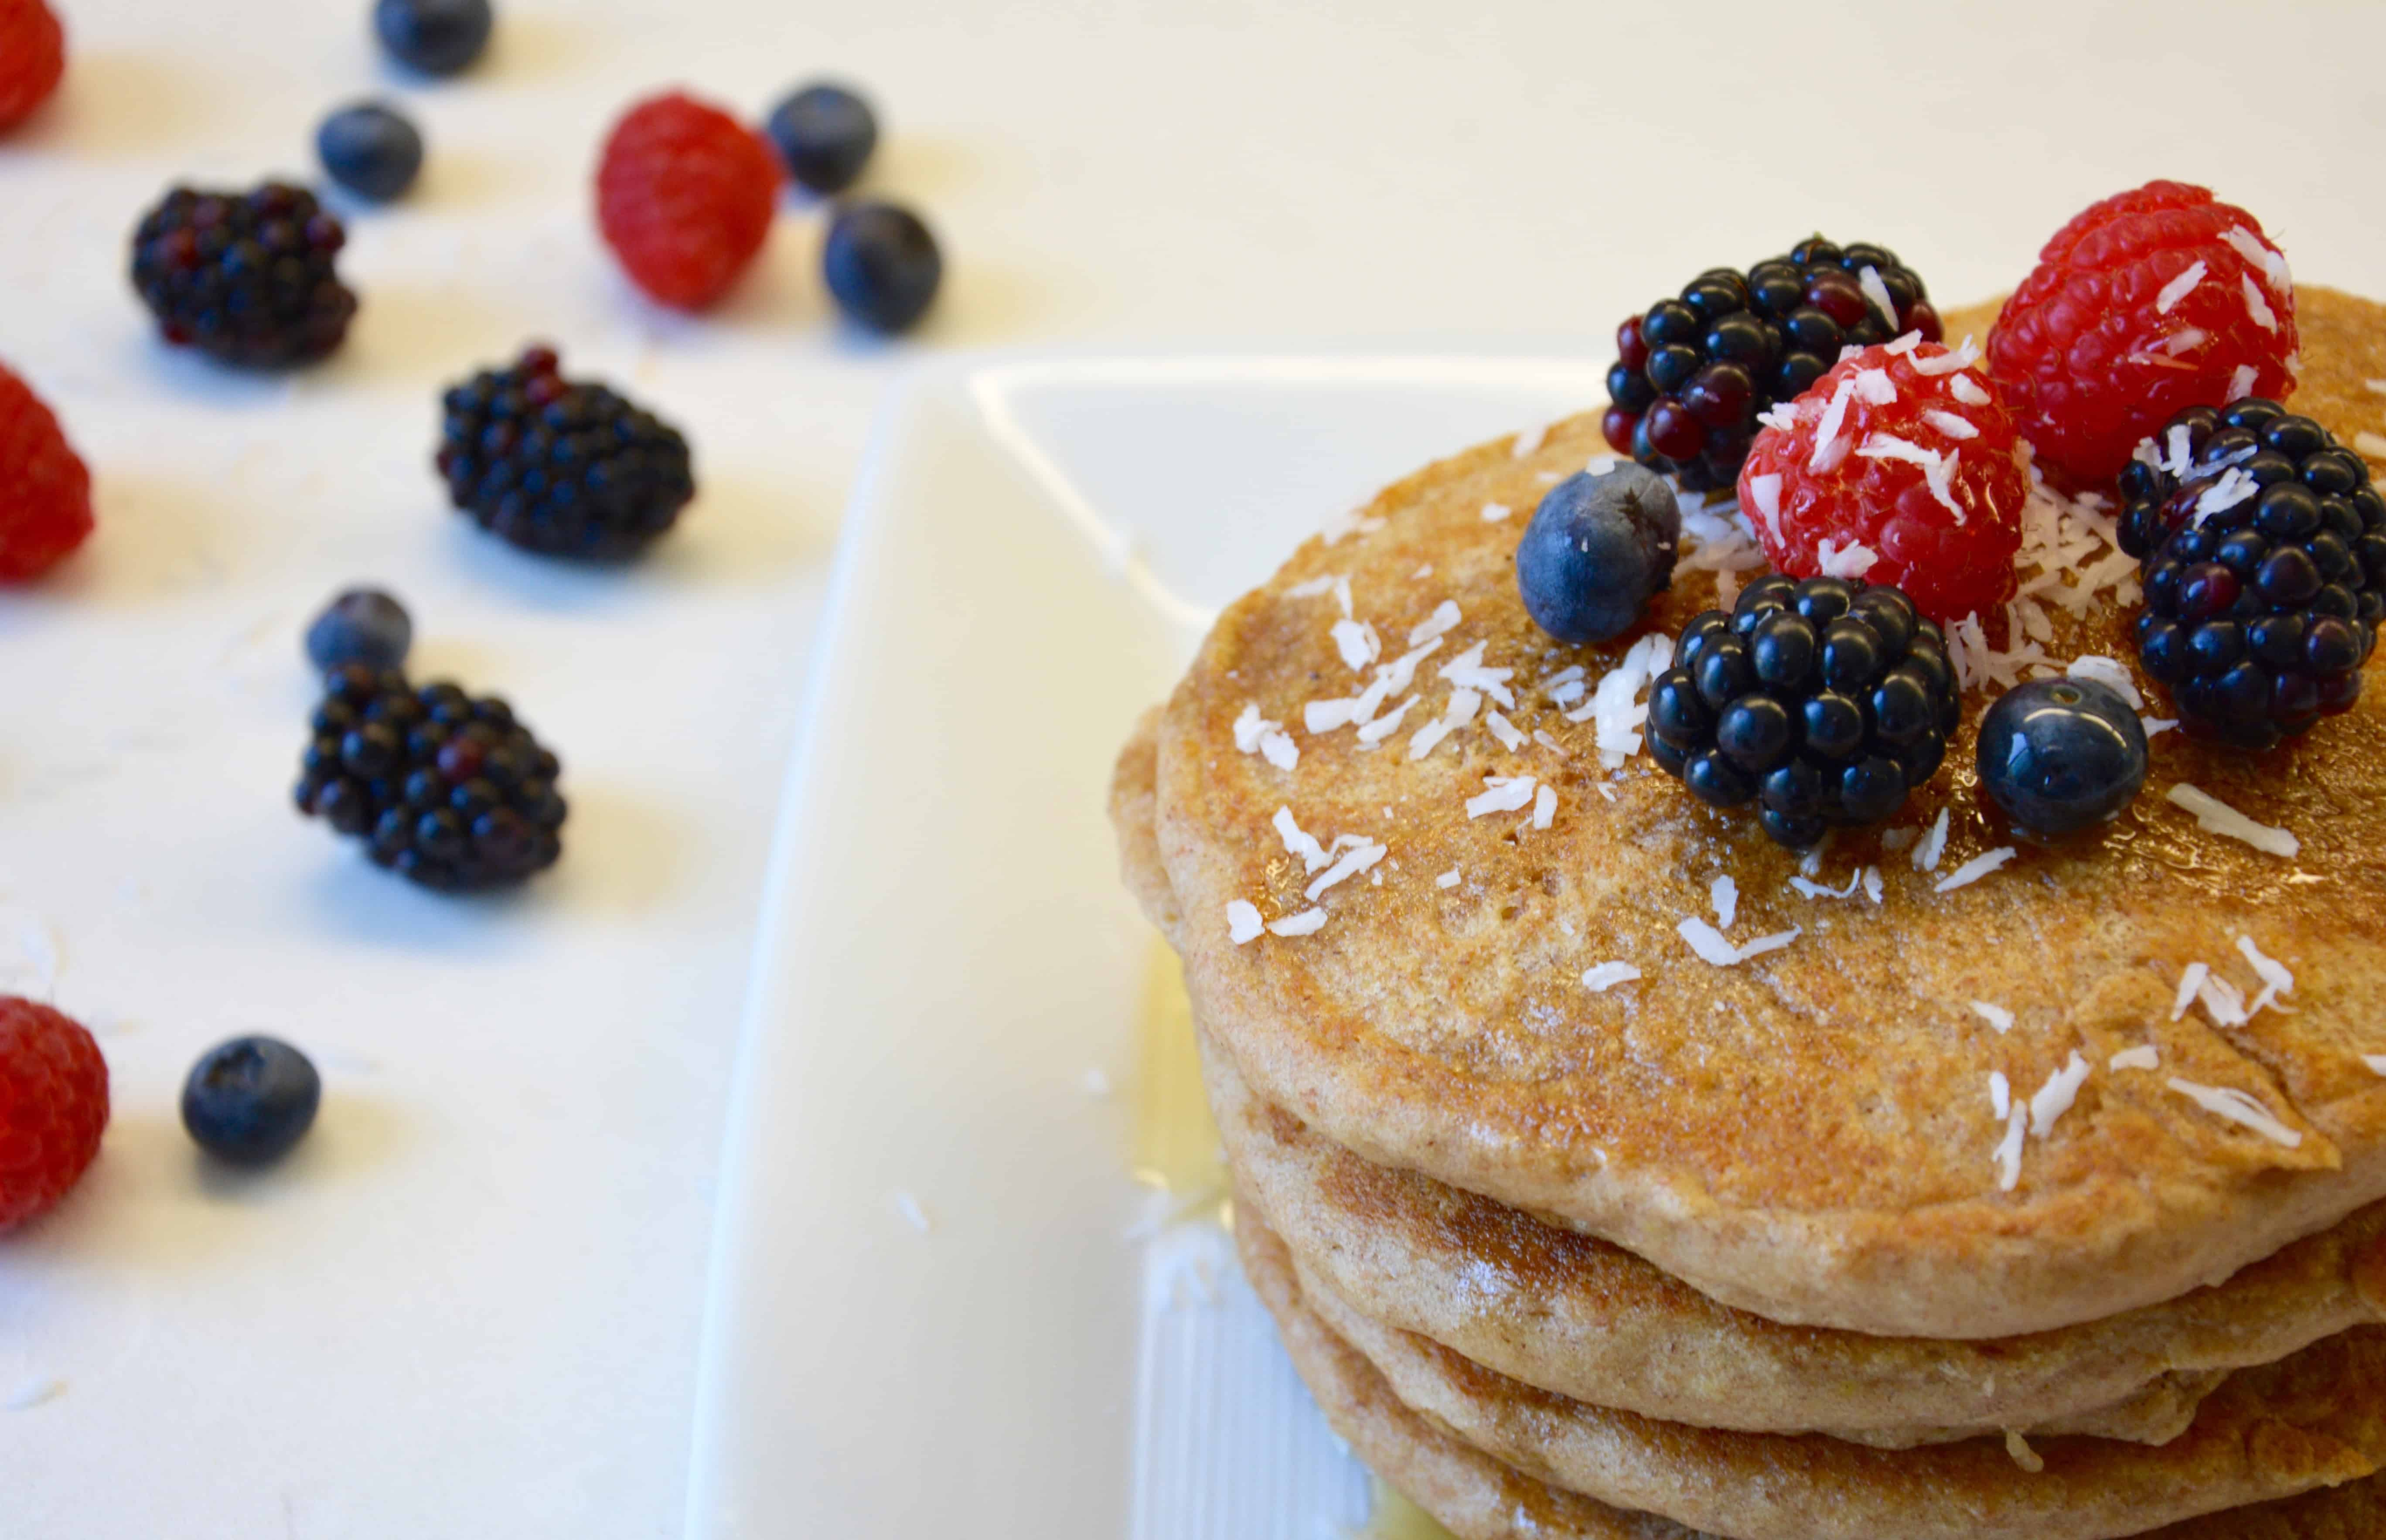 Coconut Milk Pancakes Topped with Maple Syrup and Berries